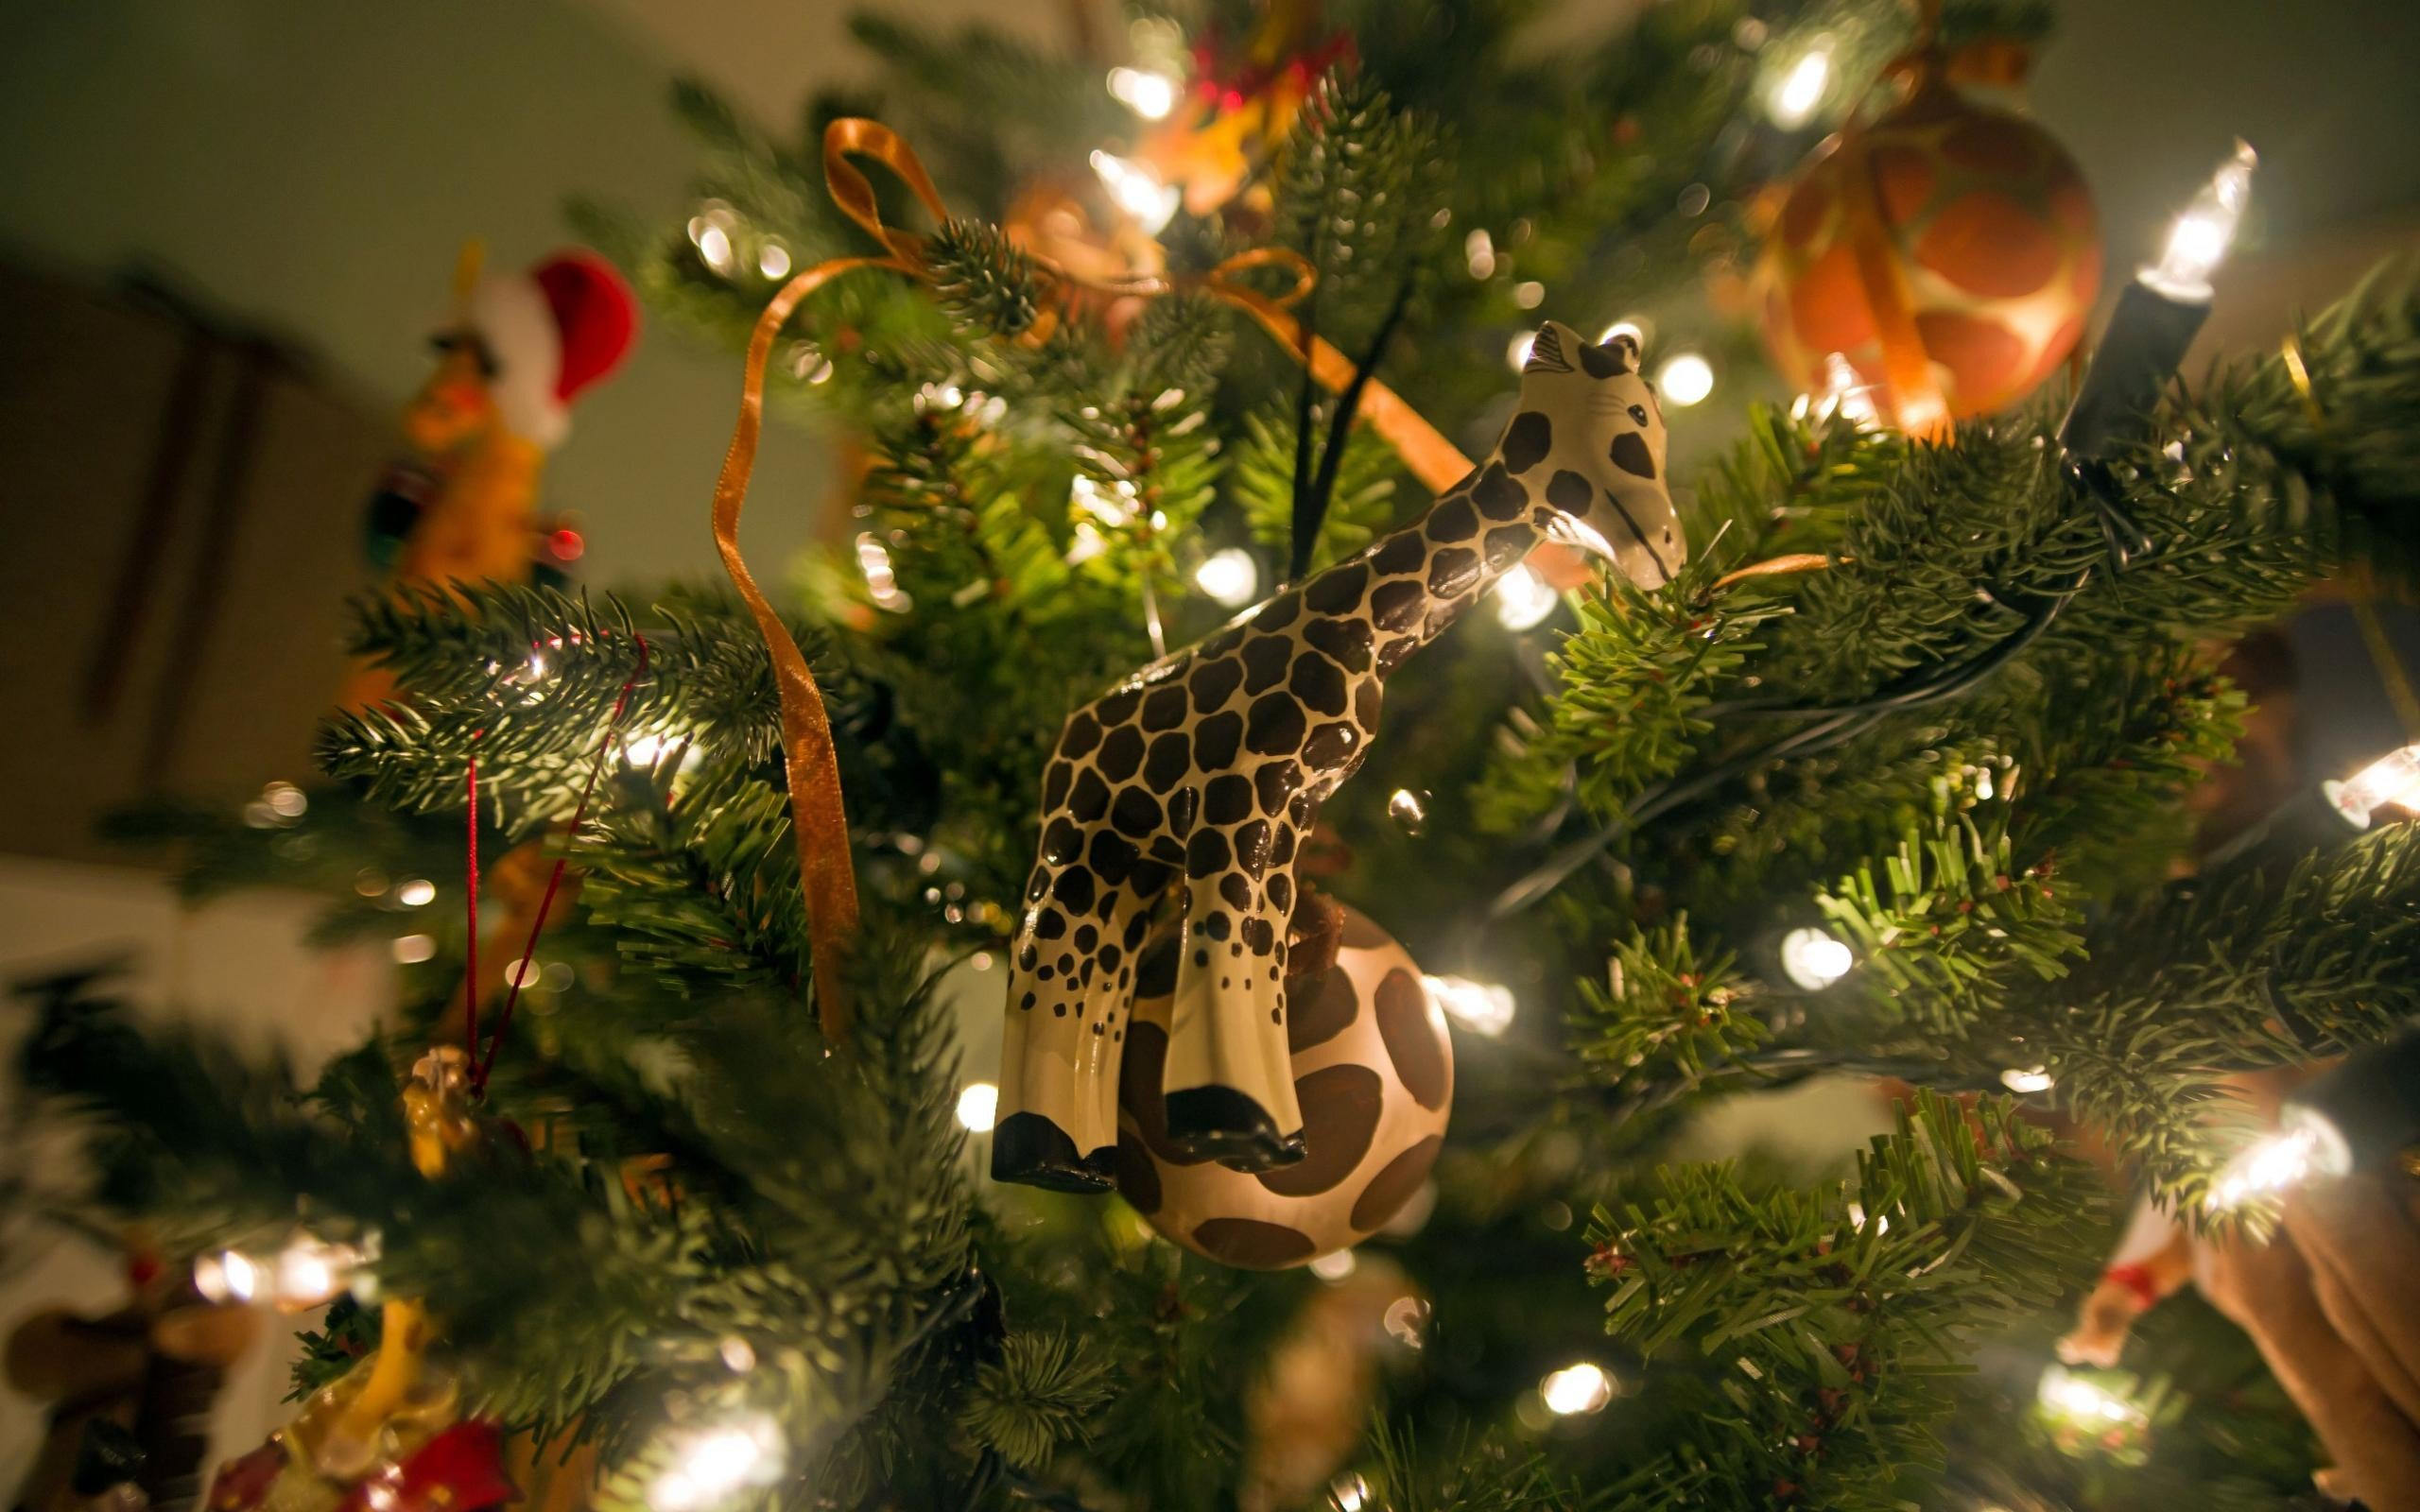 holiday-new-year-christmas-tree-photo-wallpaper-2560x1600